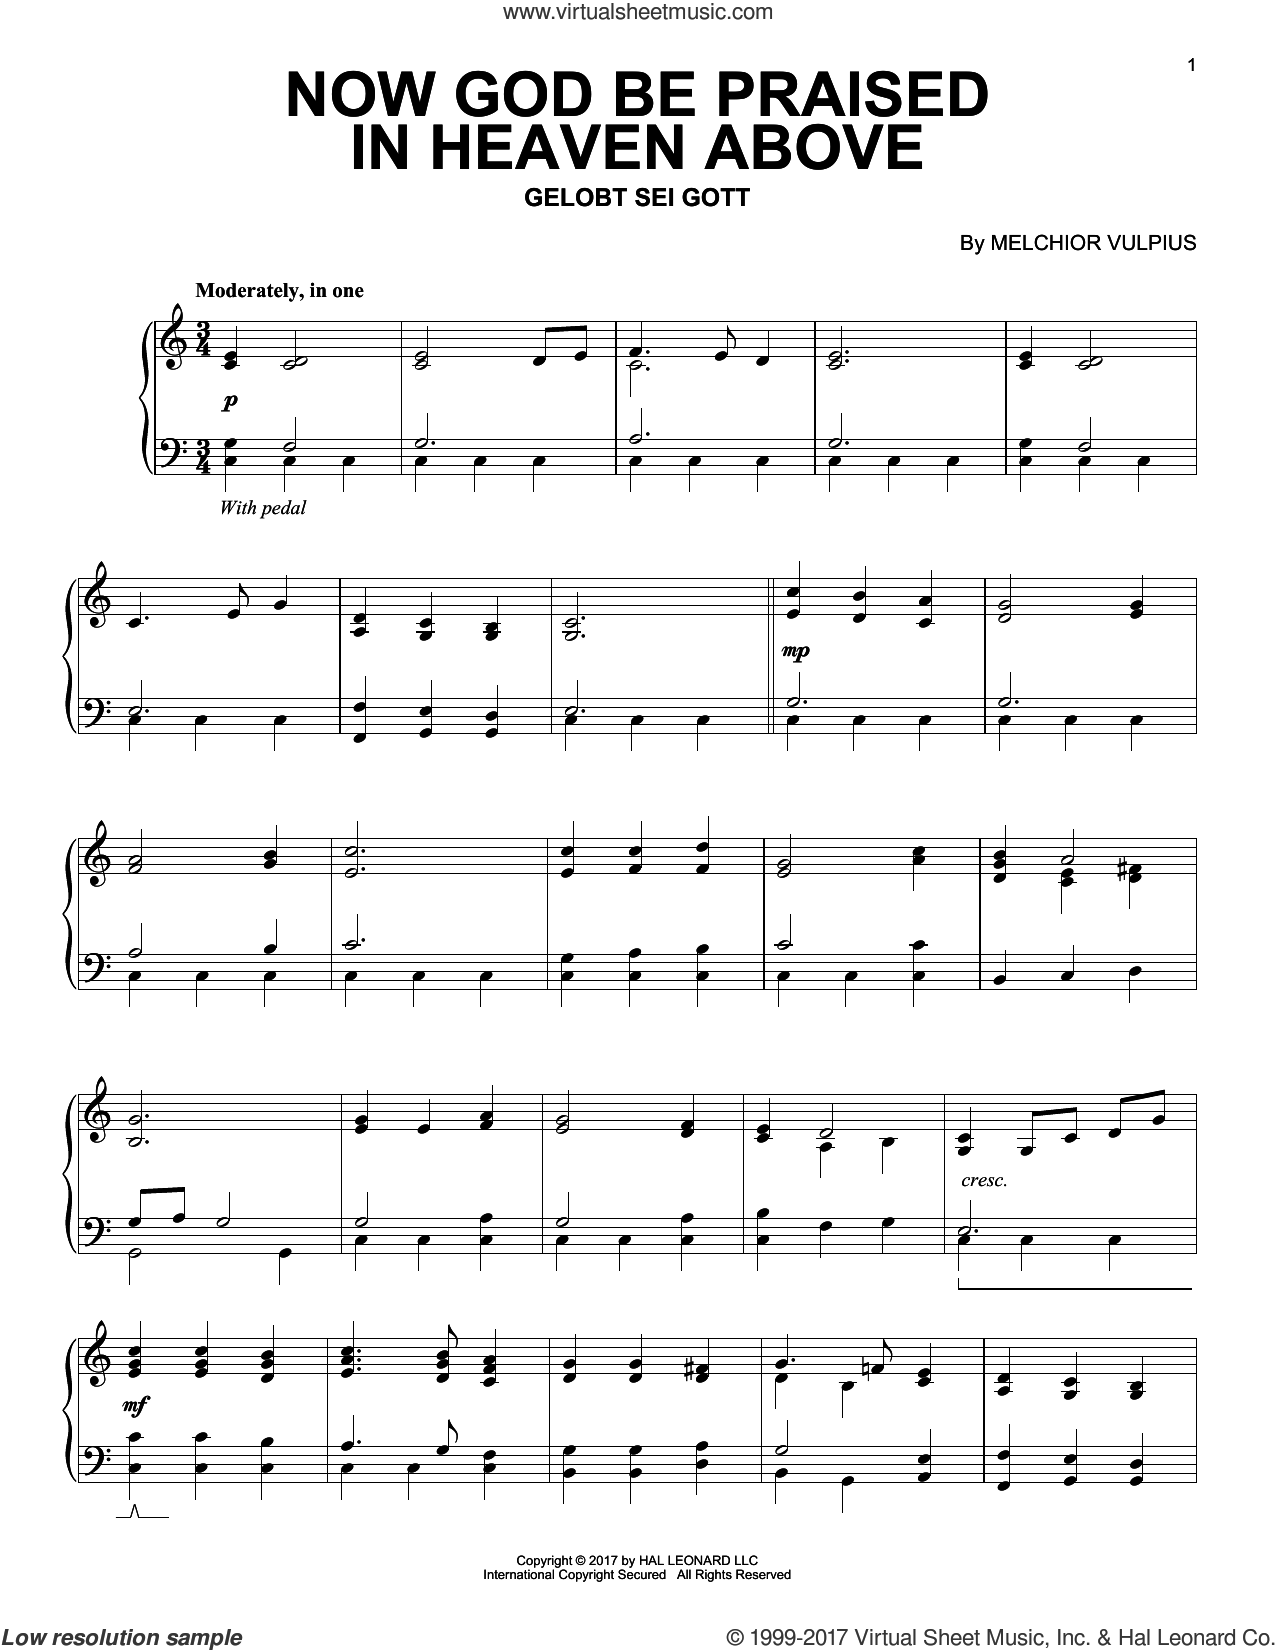 Now God Be Praised In Heaven Above sheet music for piano solo by Melchior Vulpius, intermediate skill level